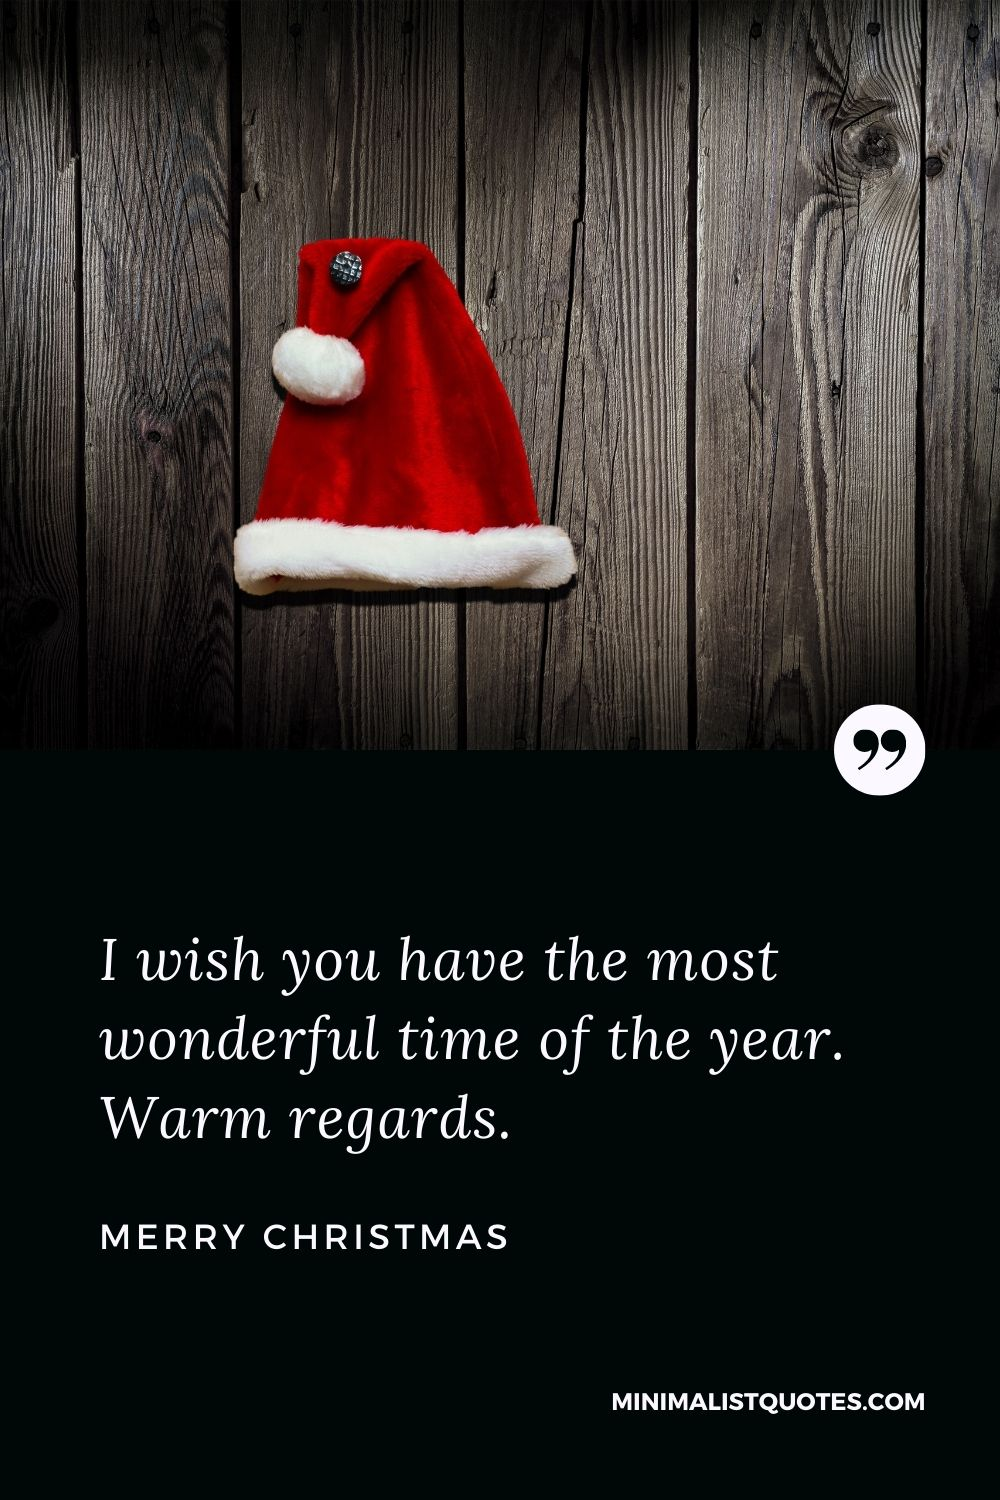 Merry Christmas Wish - I wish you have the most wonderful timeof the year. Warm regards.